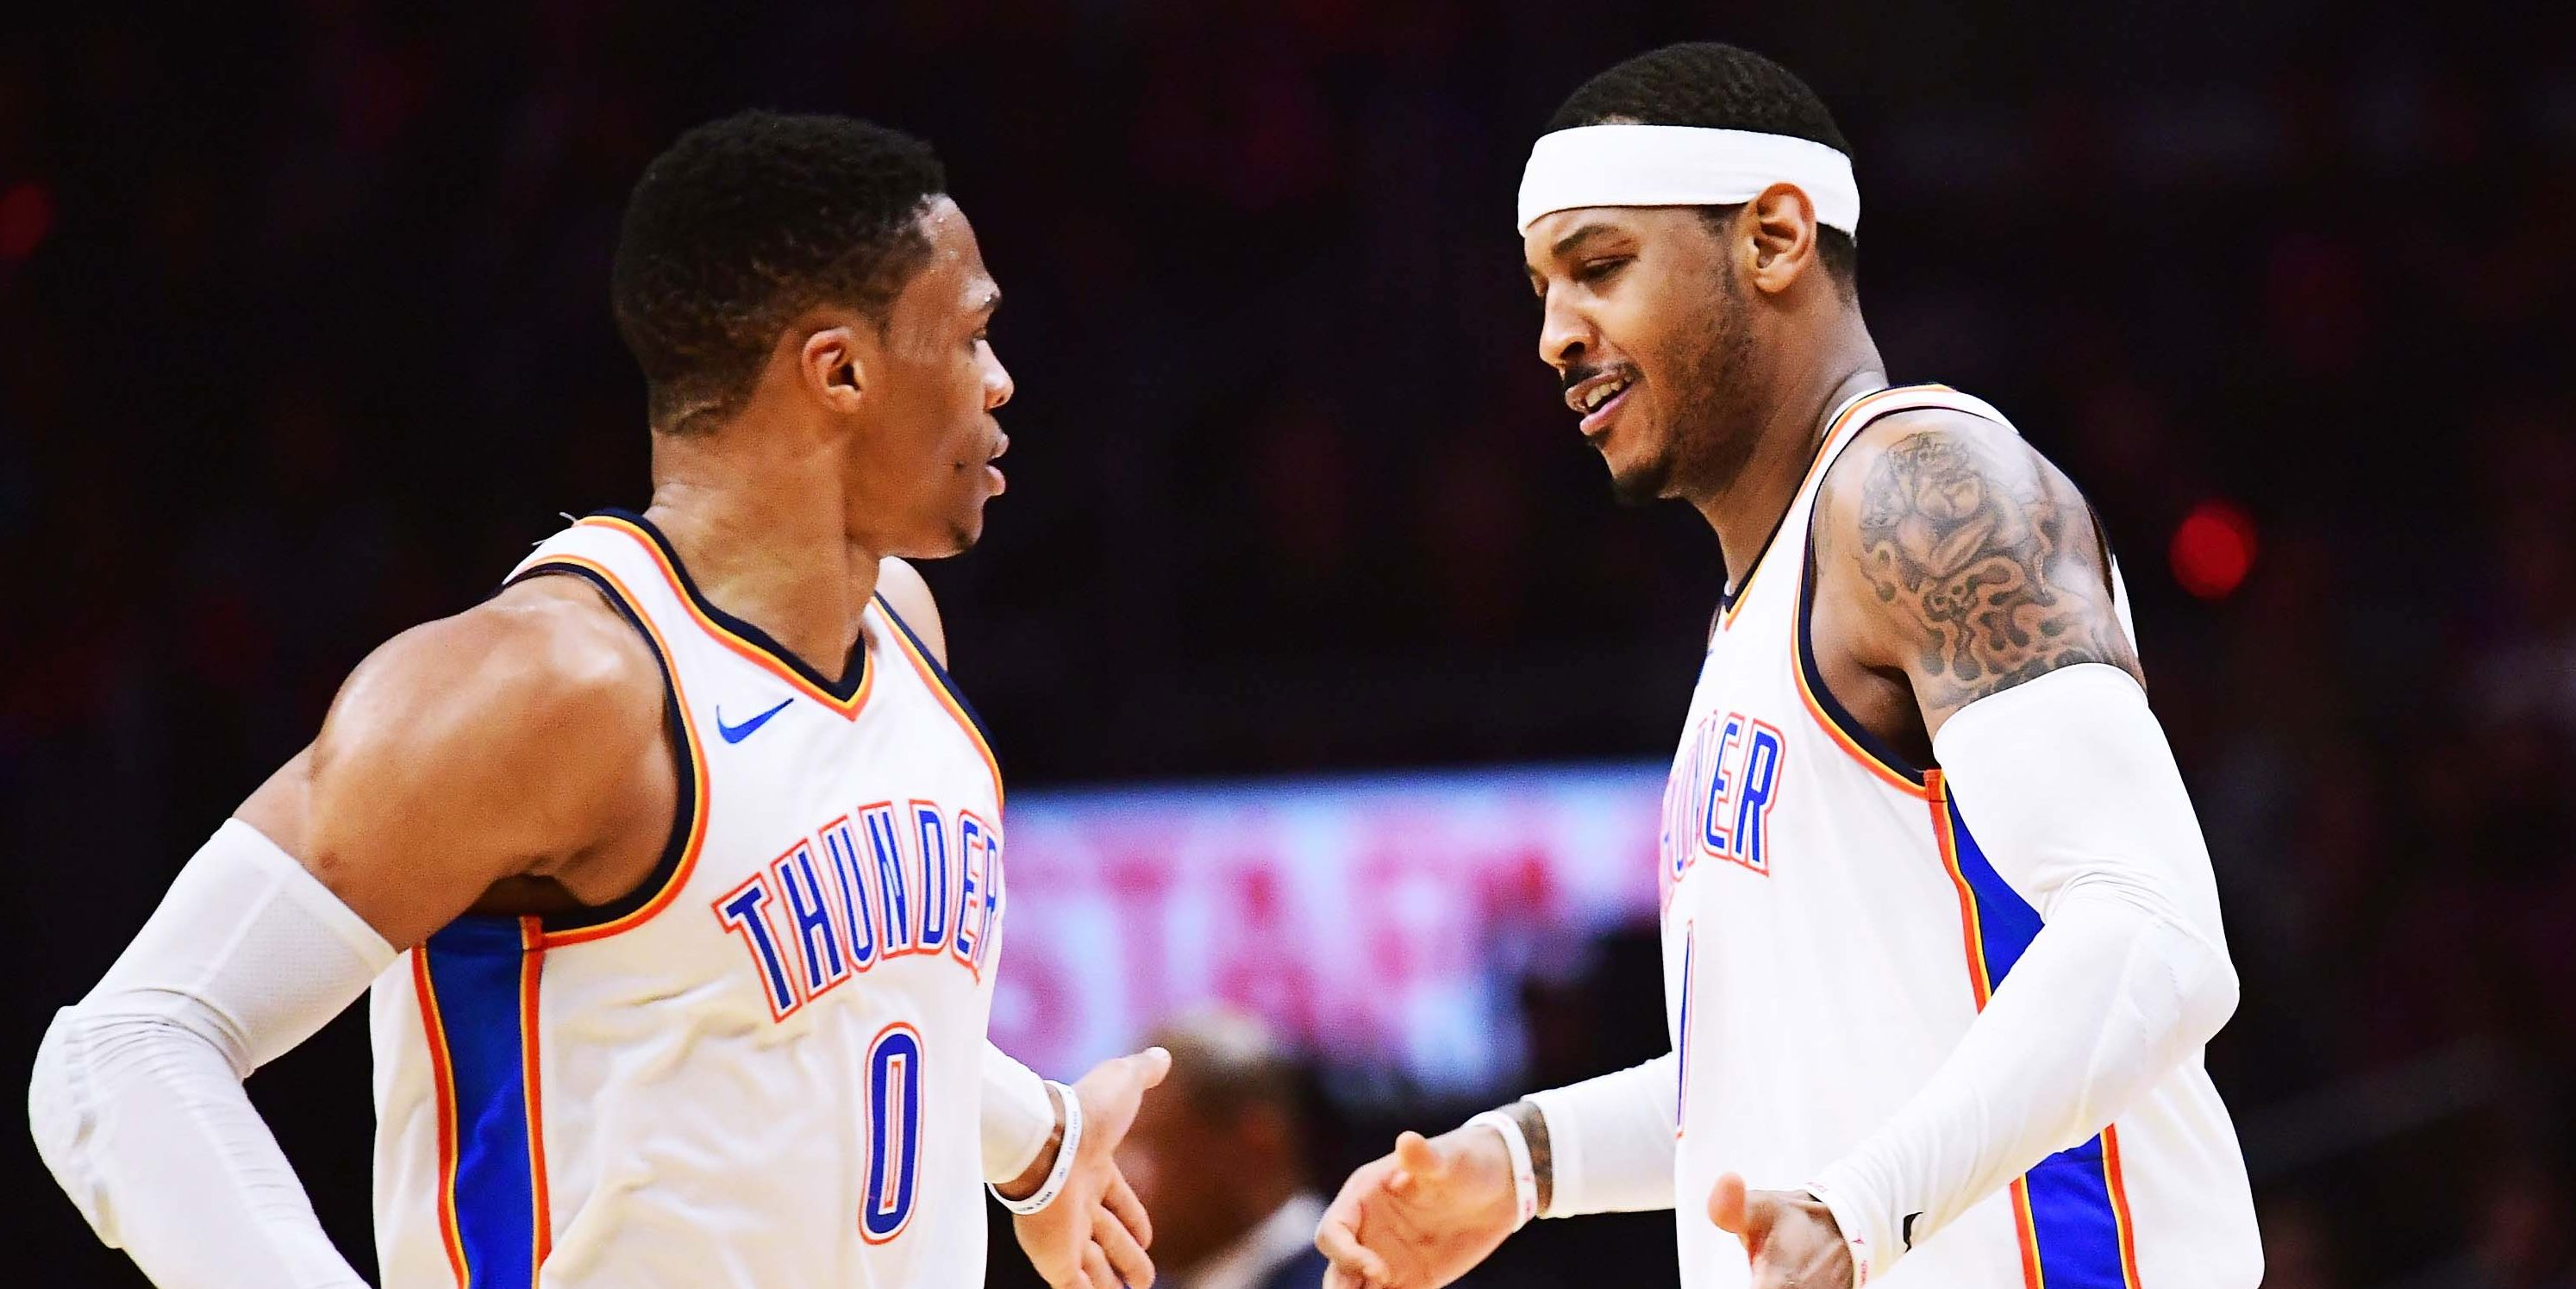 010518-sports-carmelo-anthony-reacts-to-russell-westbrook